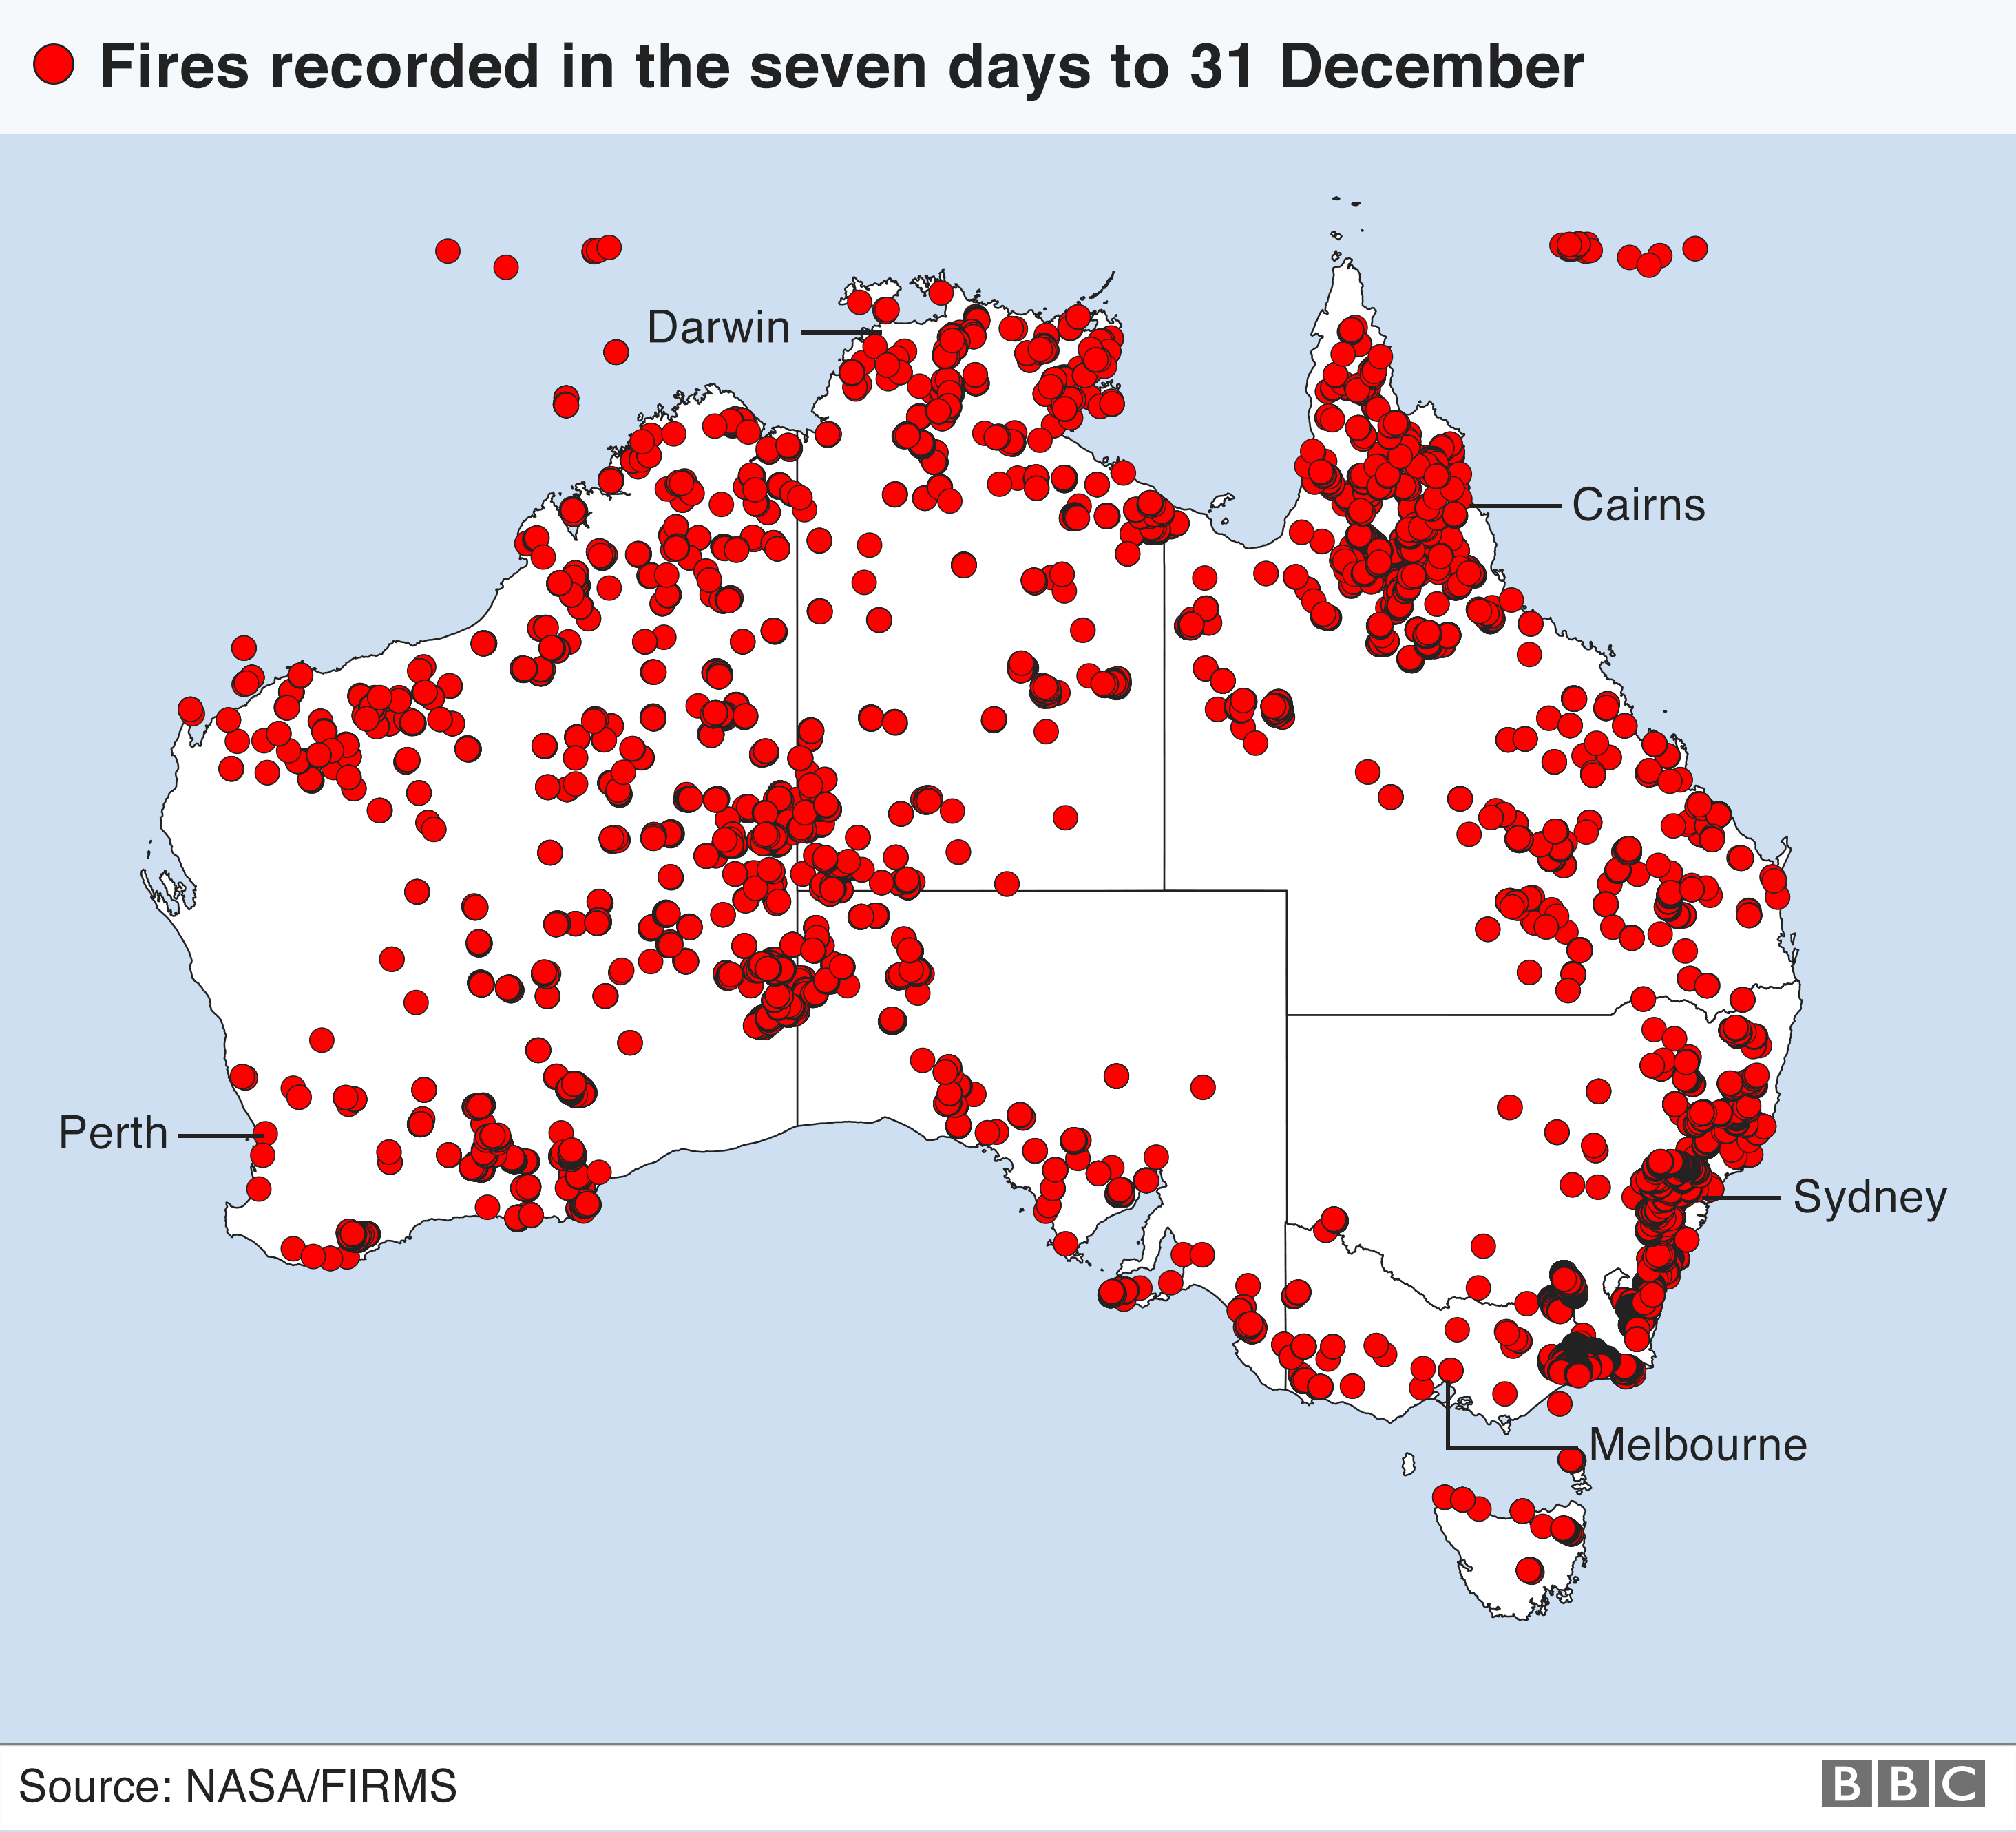 science Map showing location of every fire recorded as active in Australia in the seven days up the 31 December